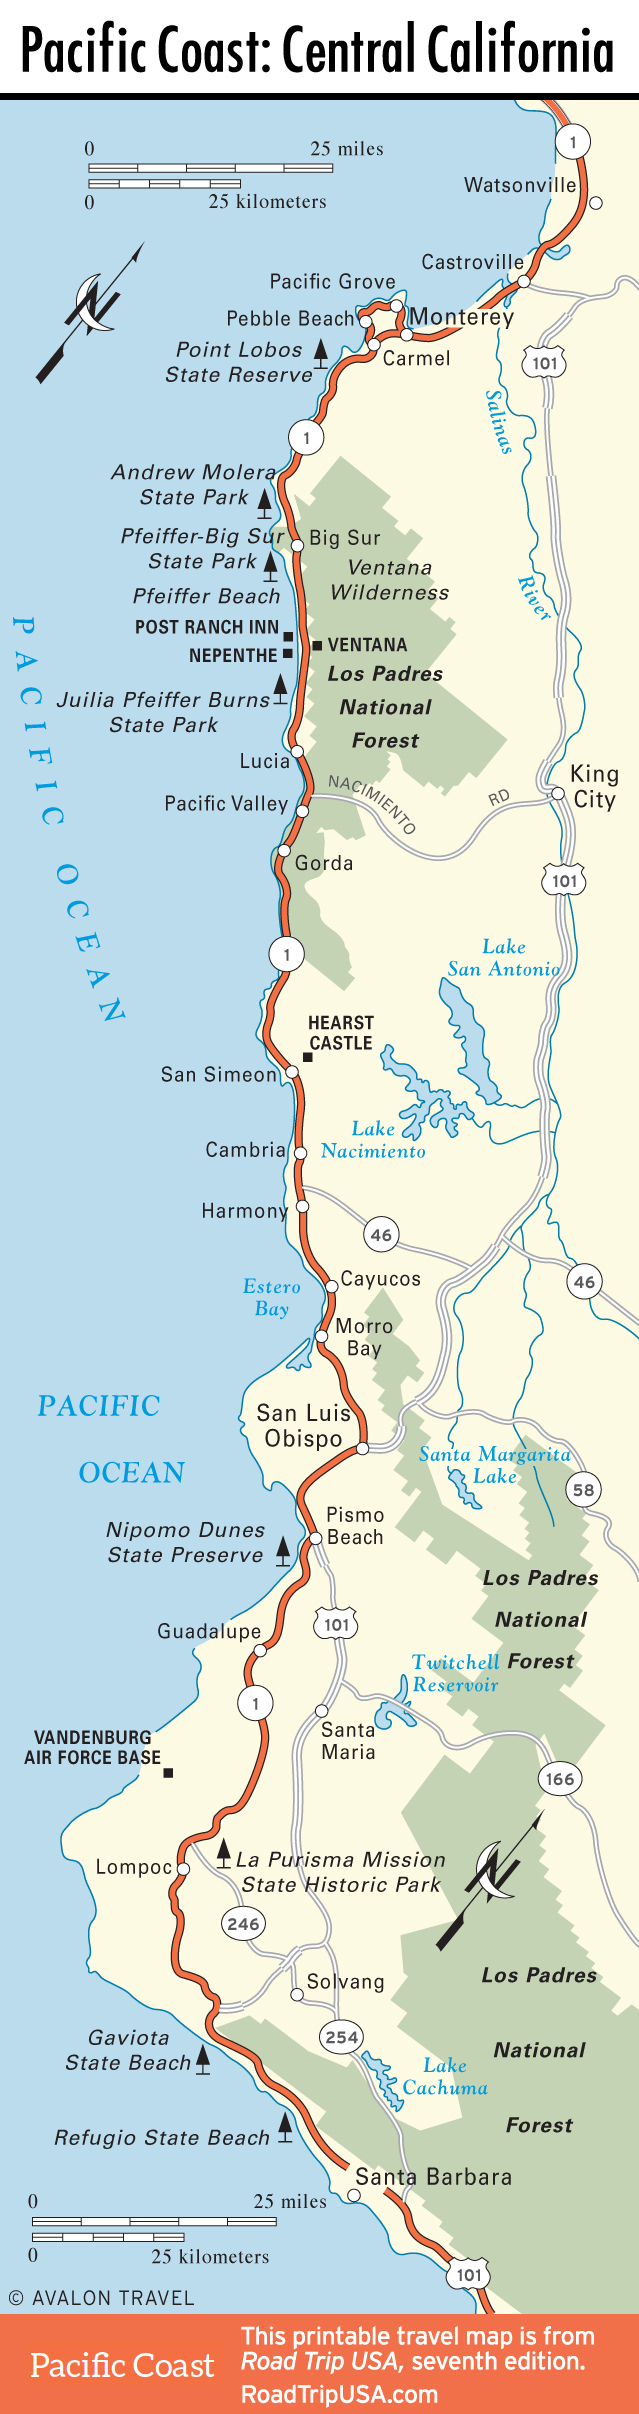 Map Of Highway 101 In California - Klipy - California Coast Map 101